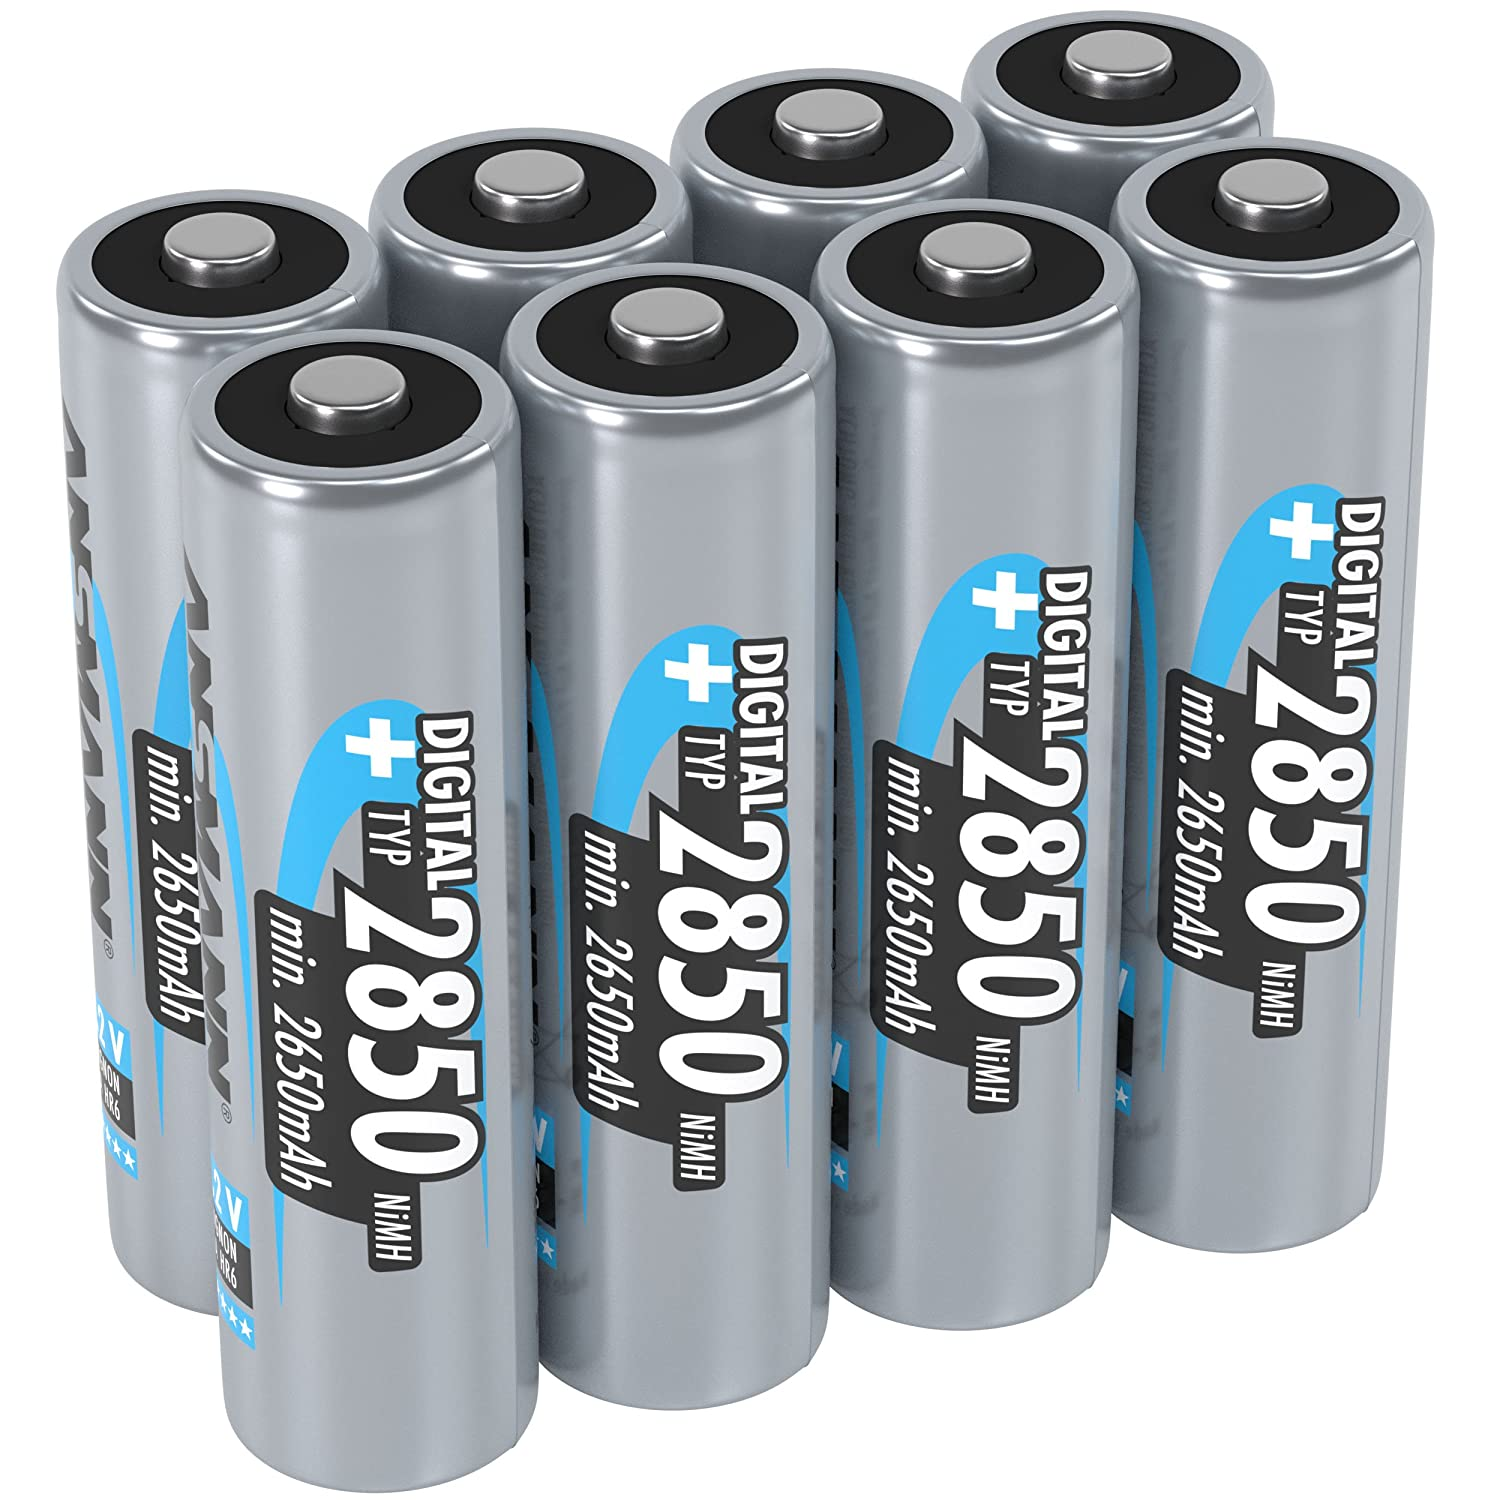 Battery Beast - for those who appreciate the quality